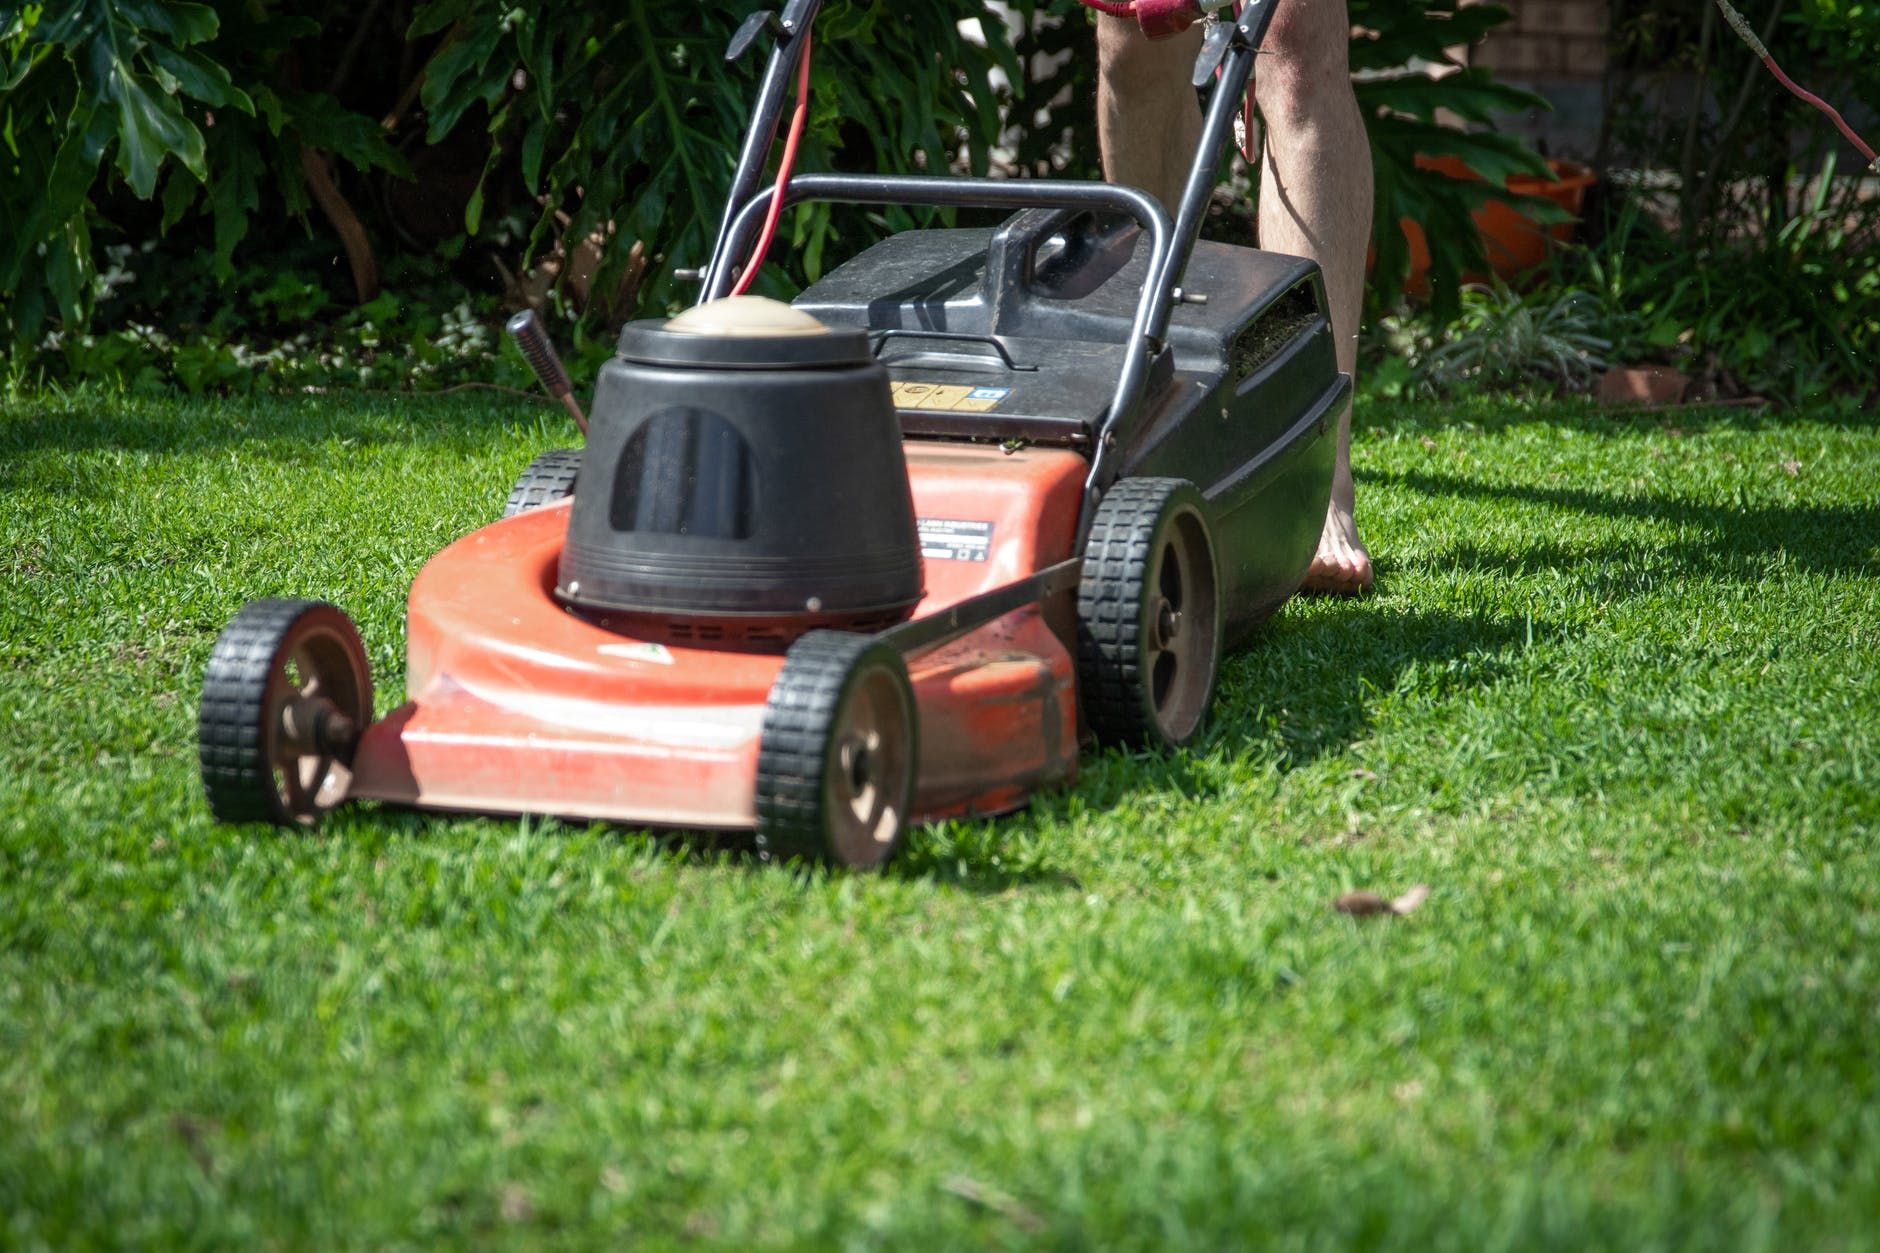 barefoot person mowing lawn